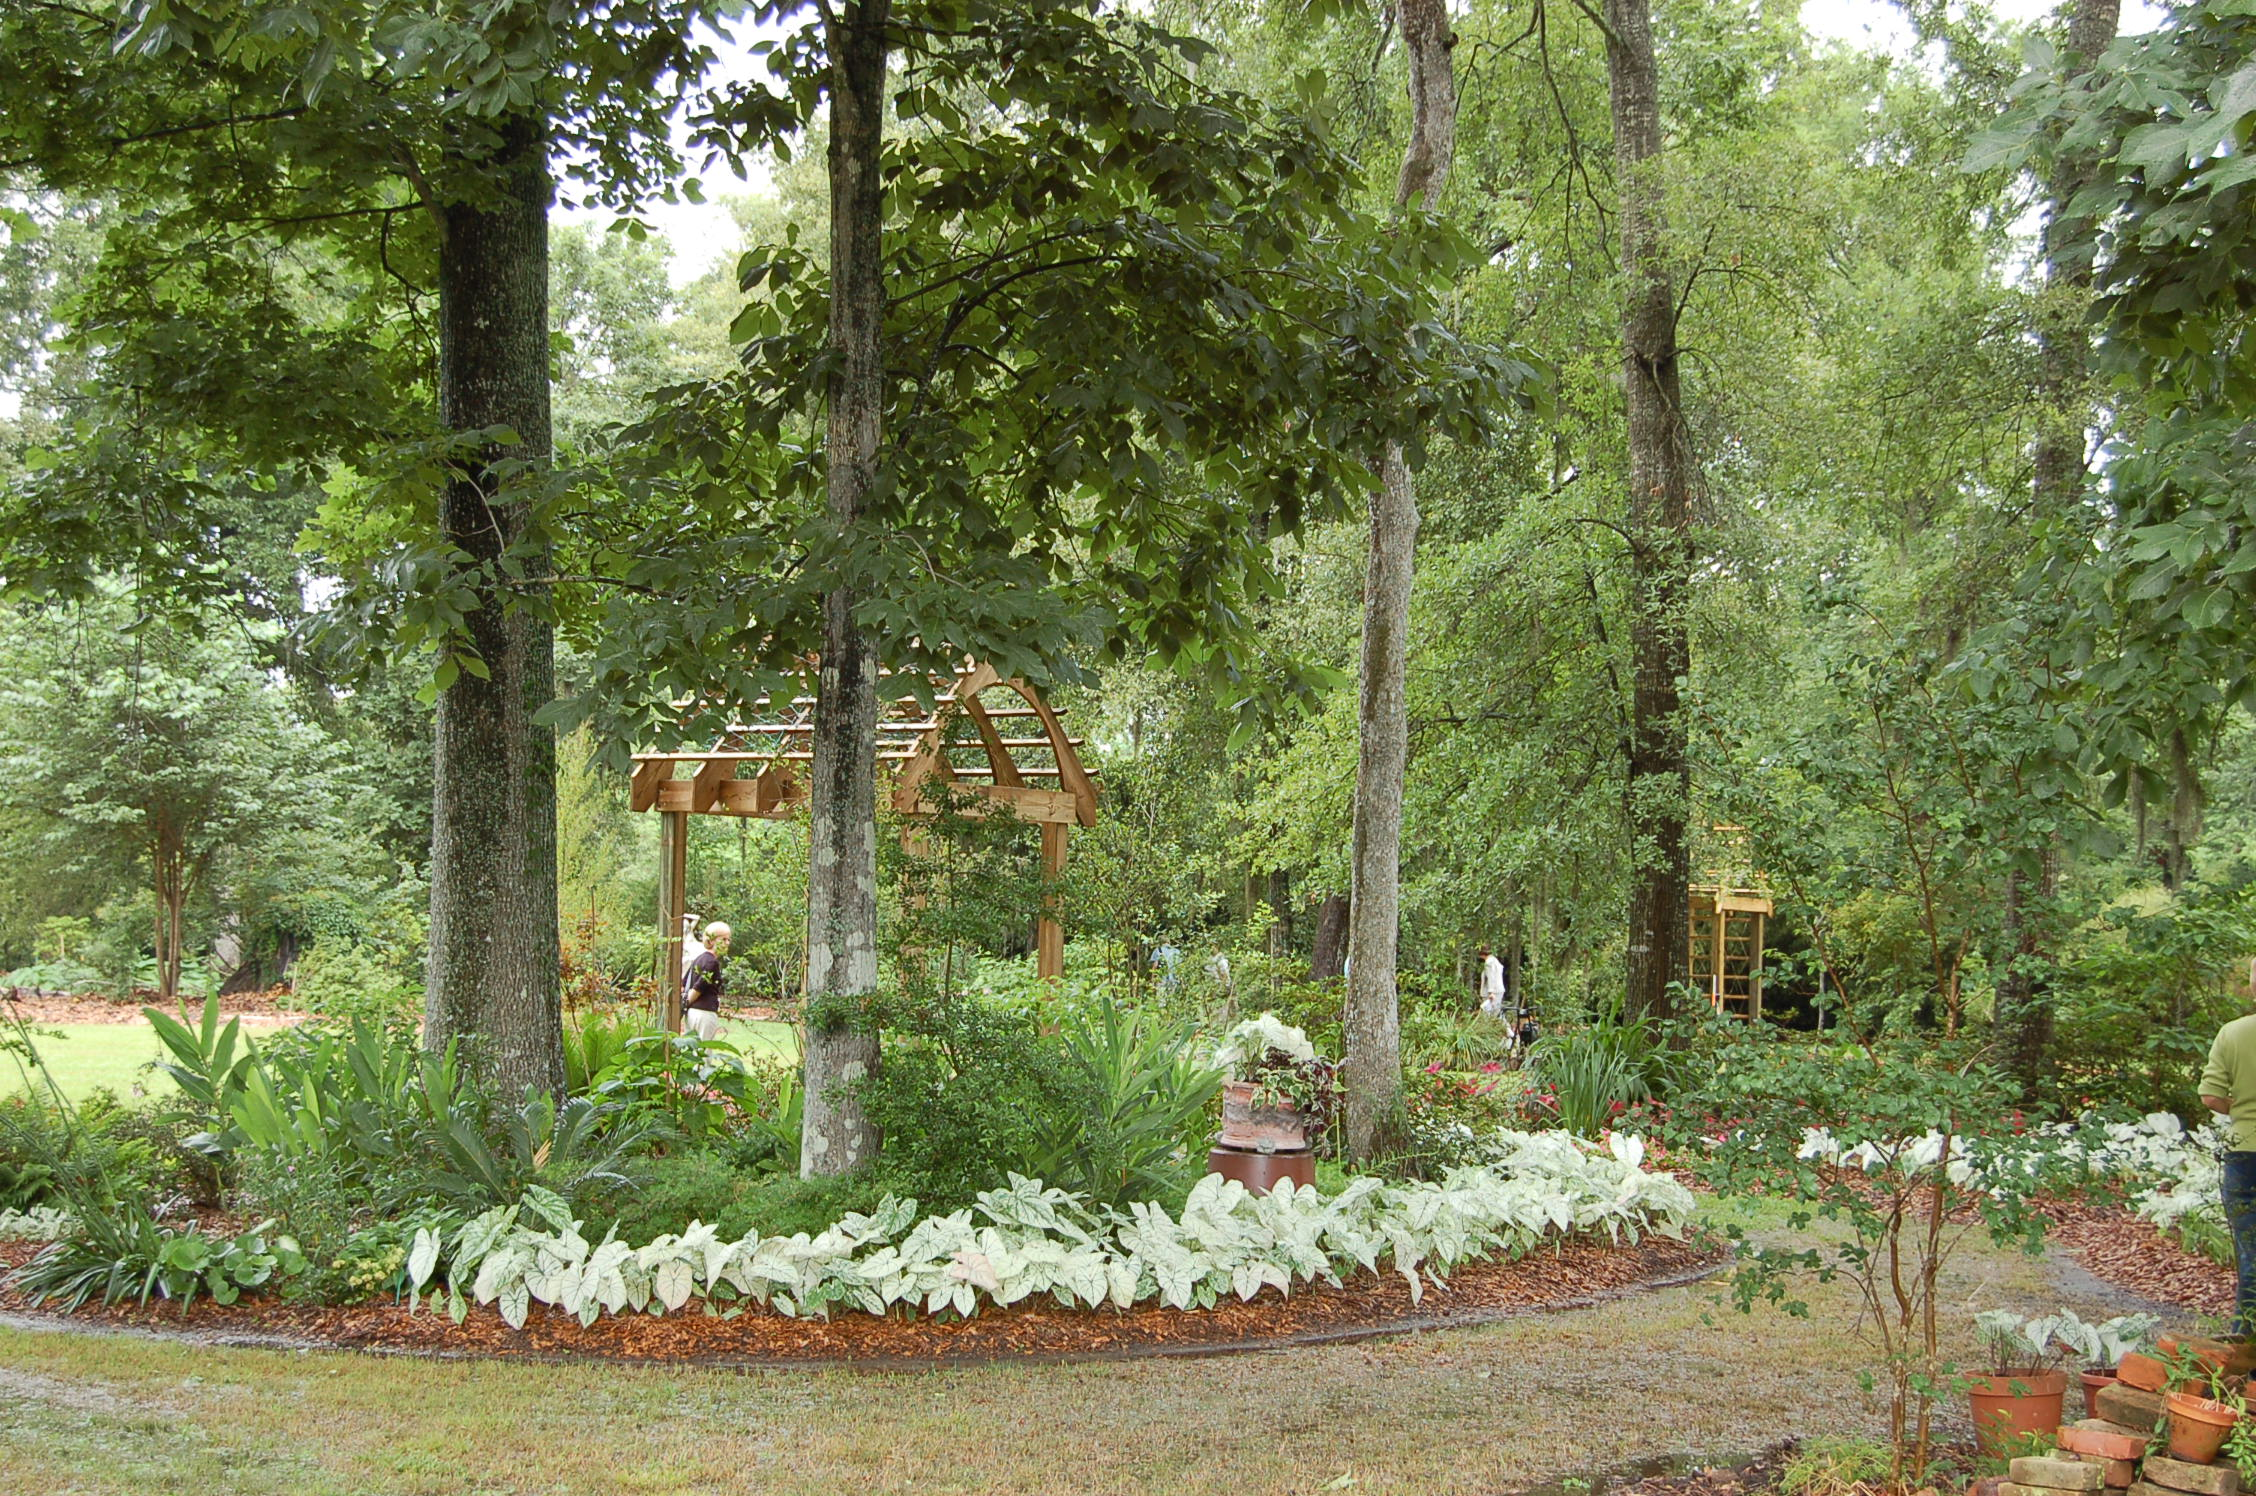 Raised bed with white caladiums - plants are up above standing water.JPG thumbnail